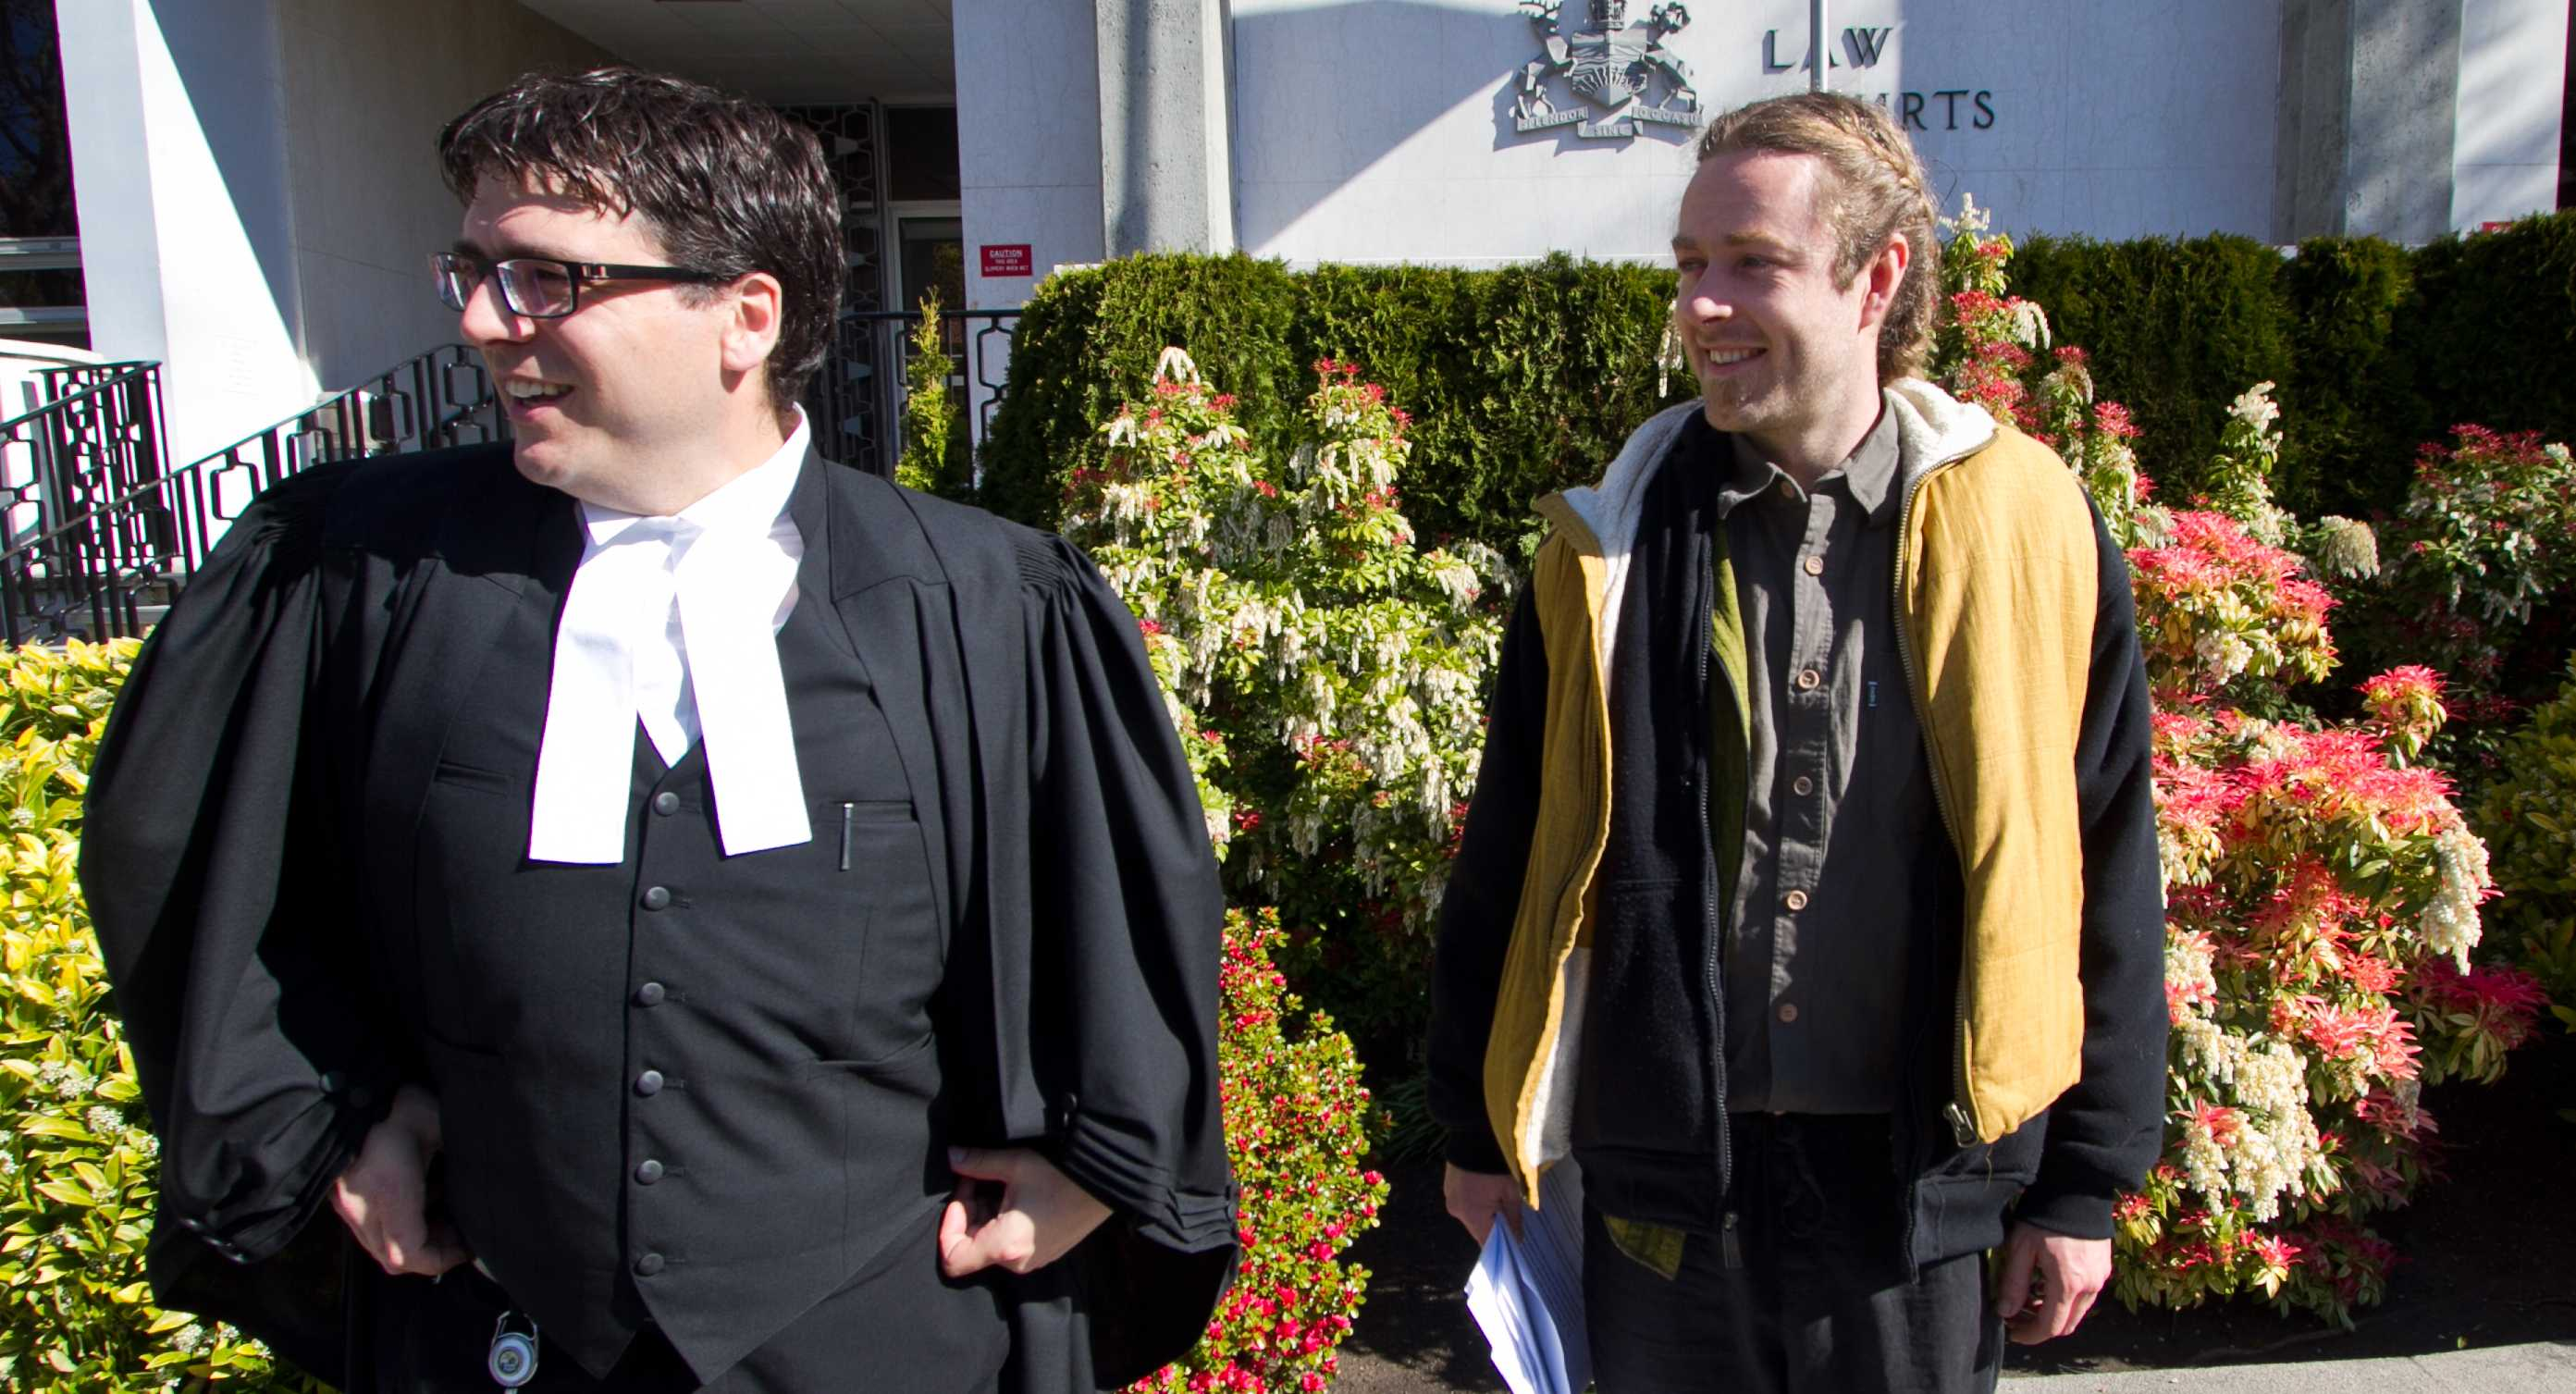 Lawyer Kirk Tousaw, left, and medical marijuana case defendant Owen Smith outside of court in Victoria on April 13, 2012.